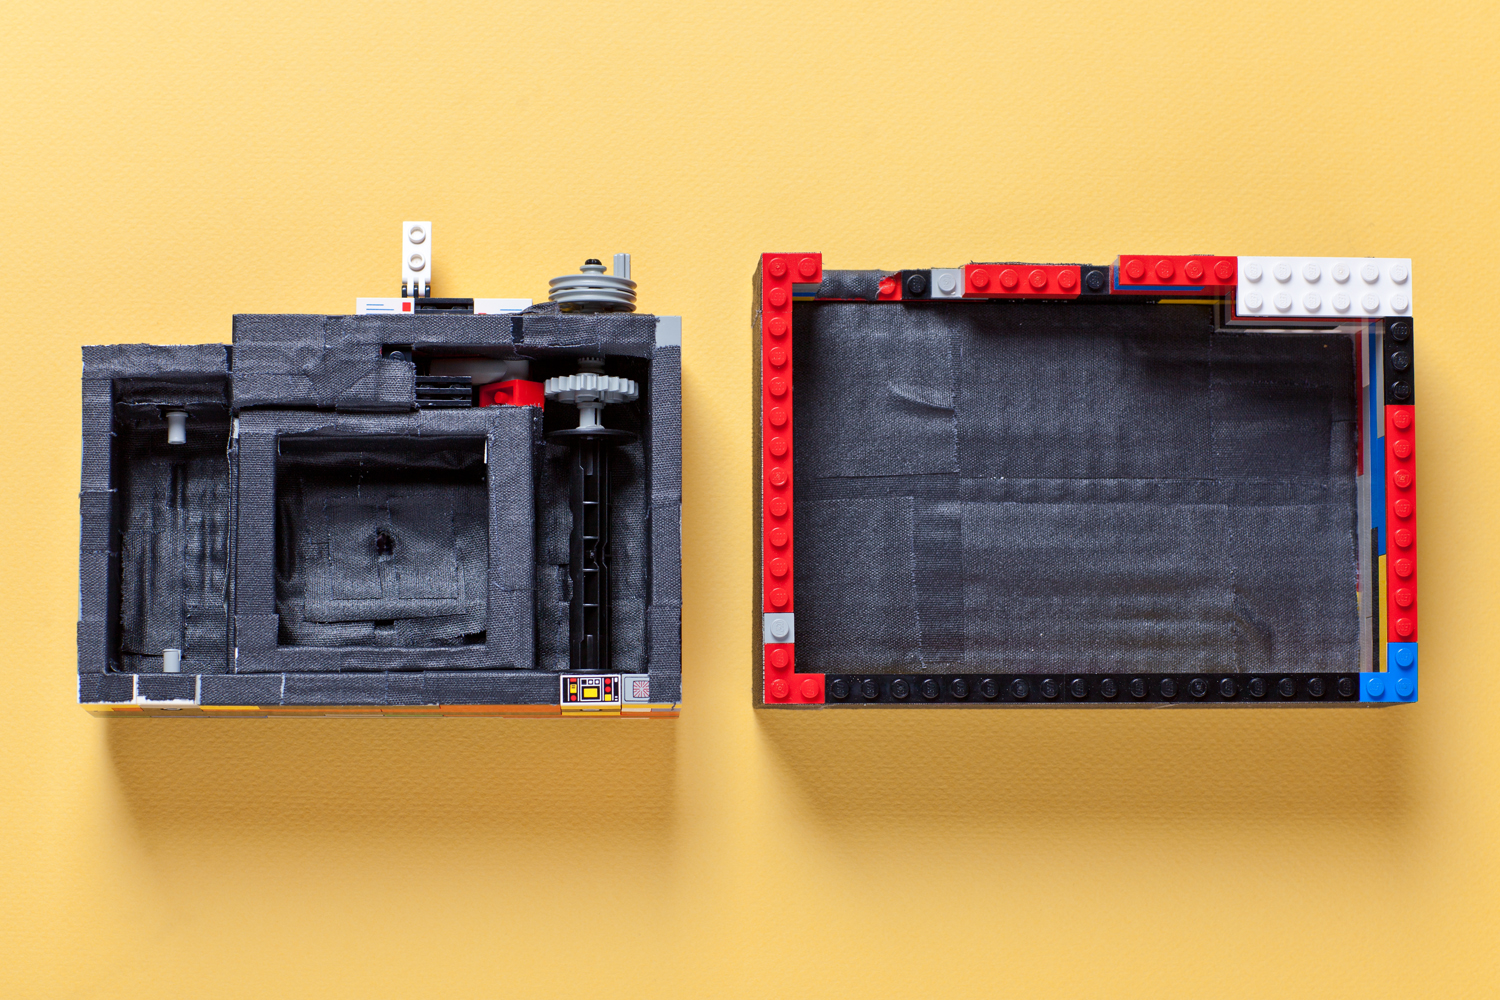 Lego Pinhole Camera Inside.jpg